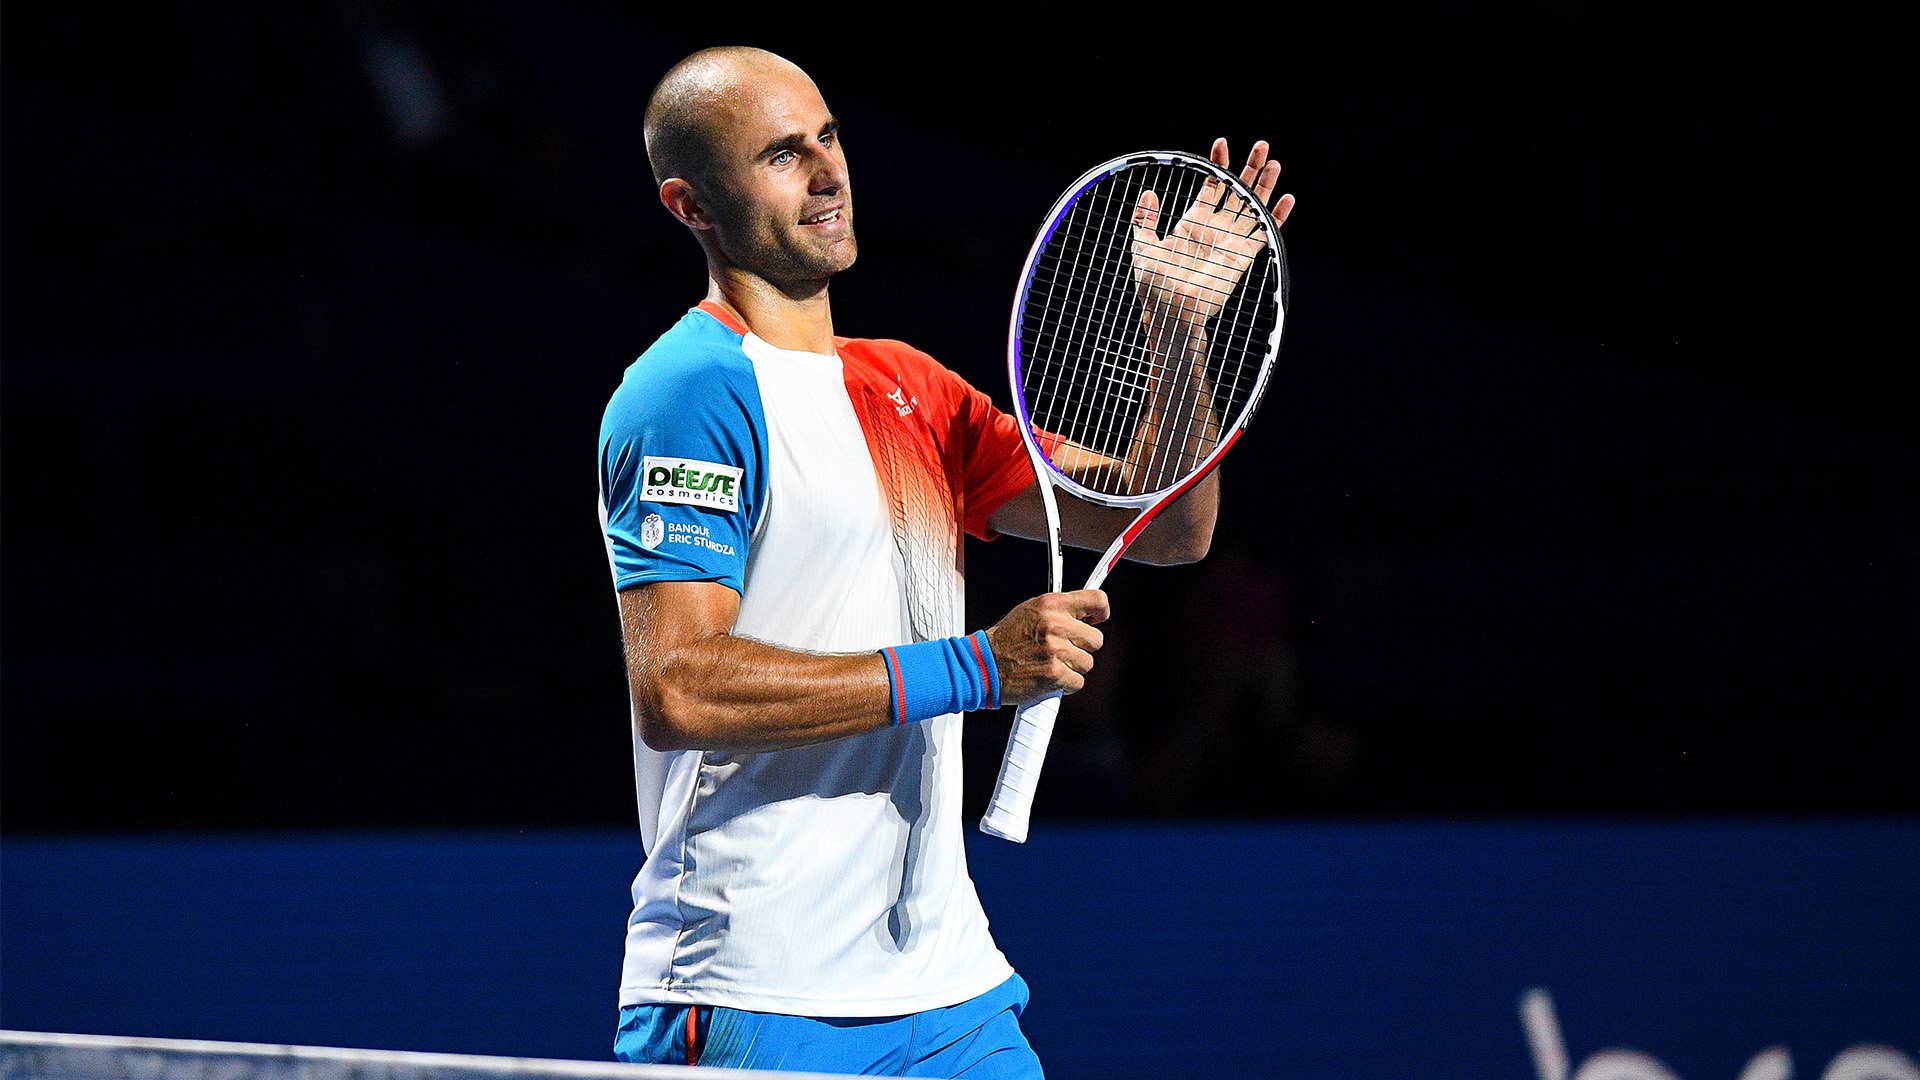 Marius Copil se califica in finala de la Swiss Indoors